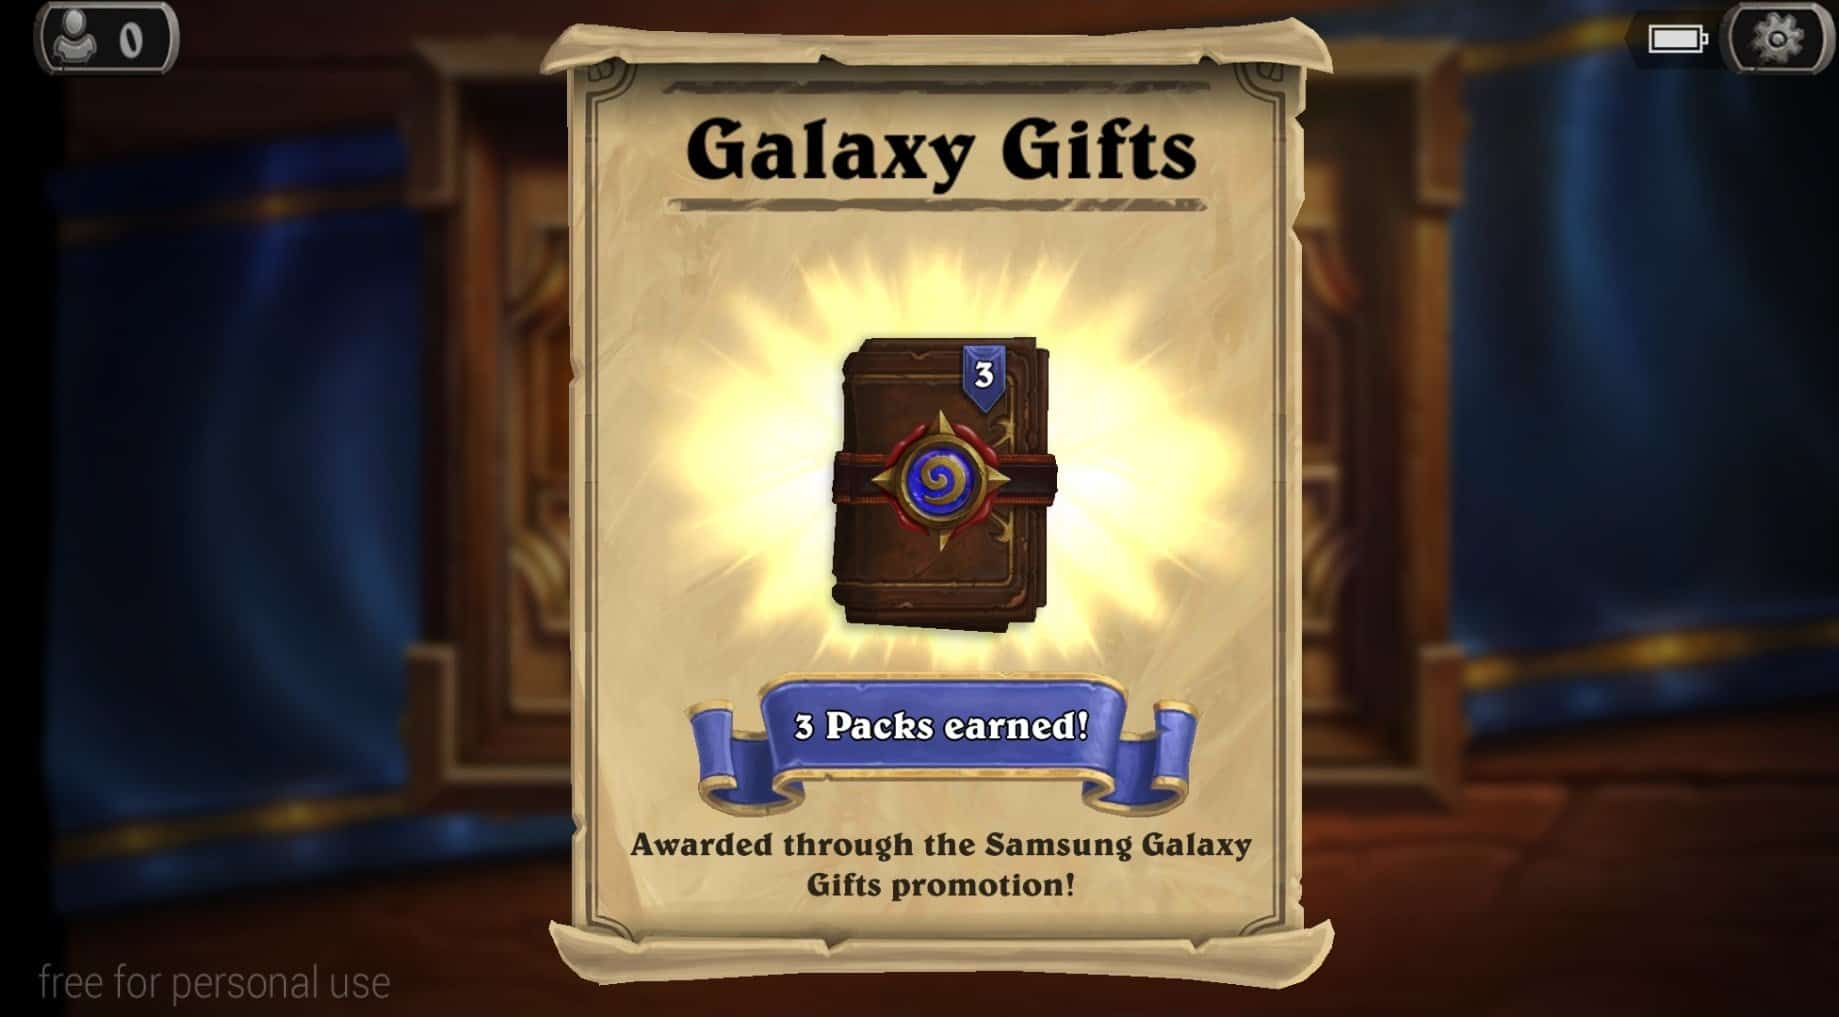 hearthstone galaxy gift 3 packs earned